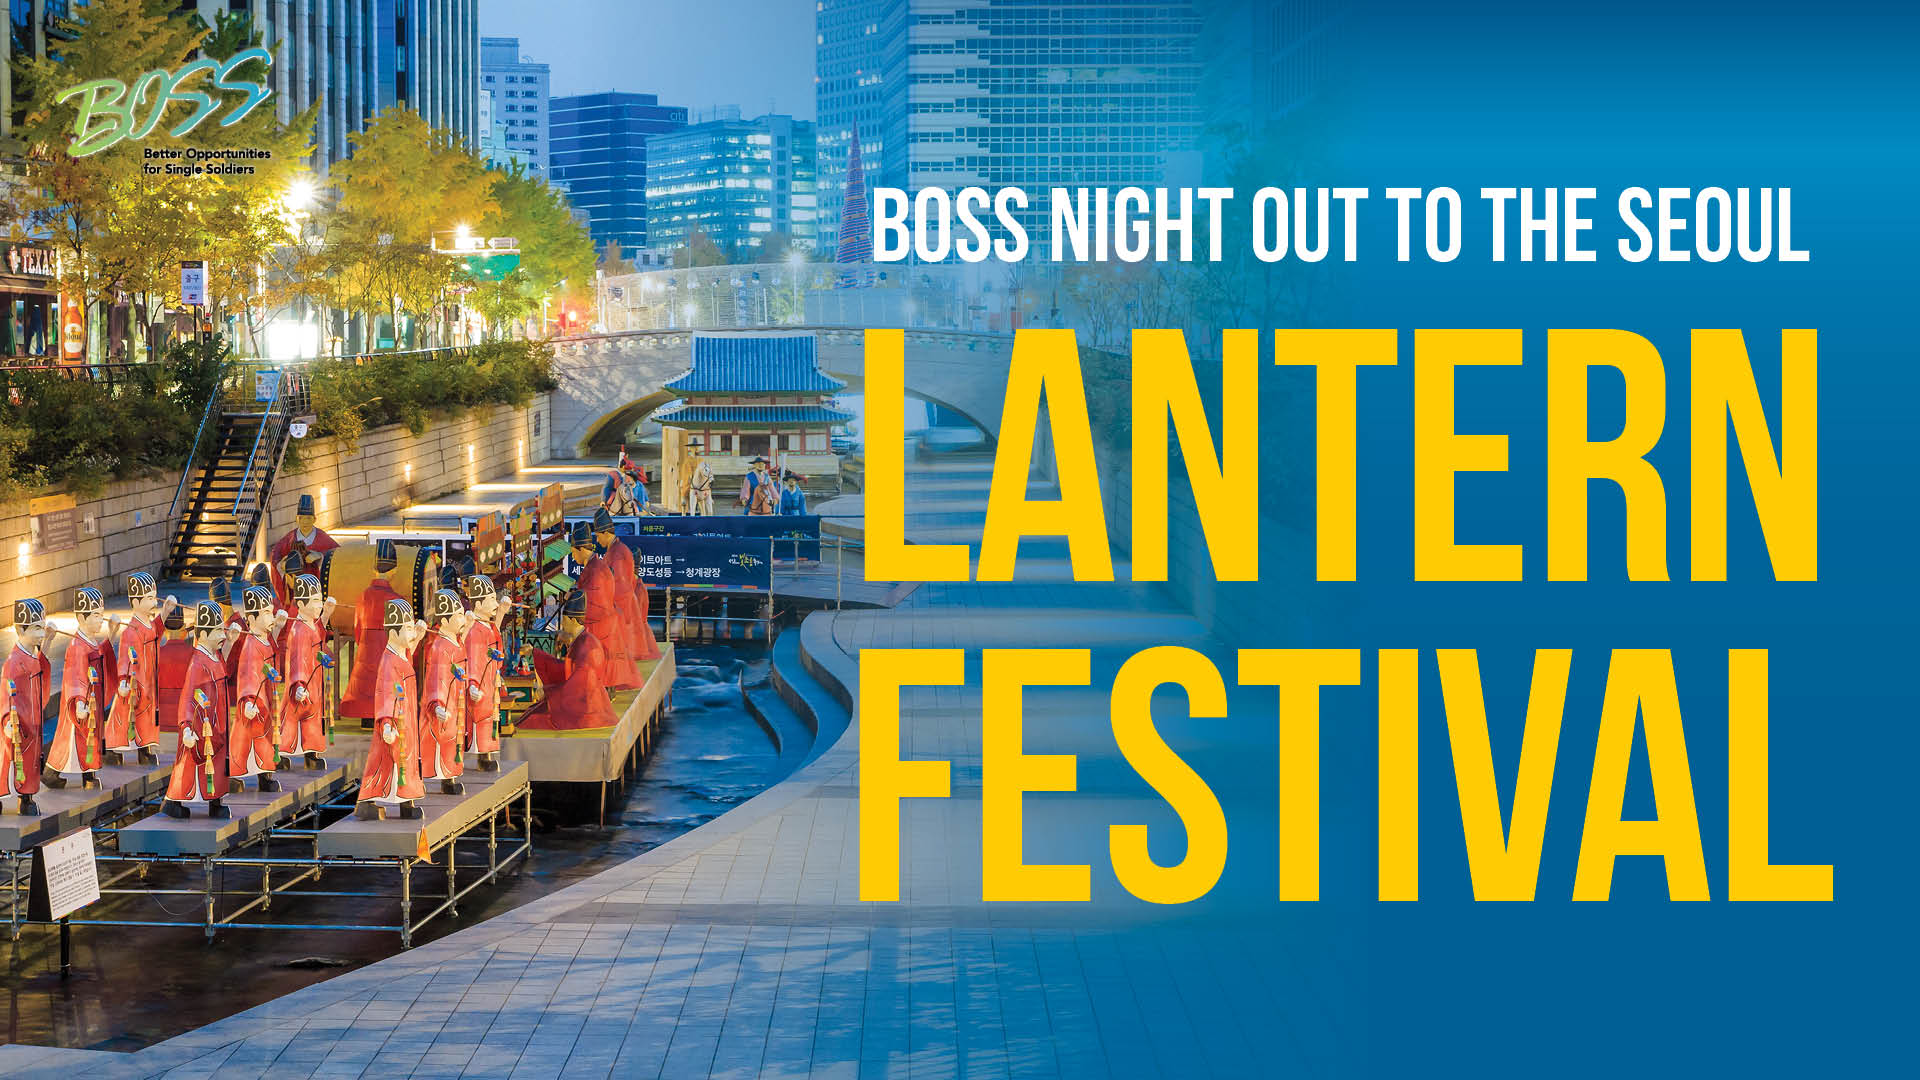 BOSS Night out to the Seoul Lantern Festival